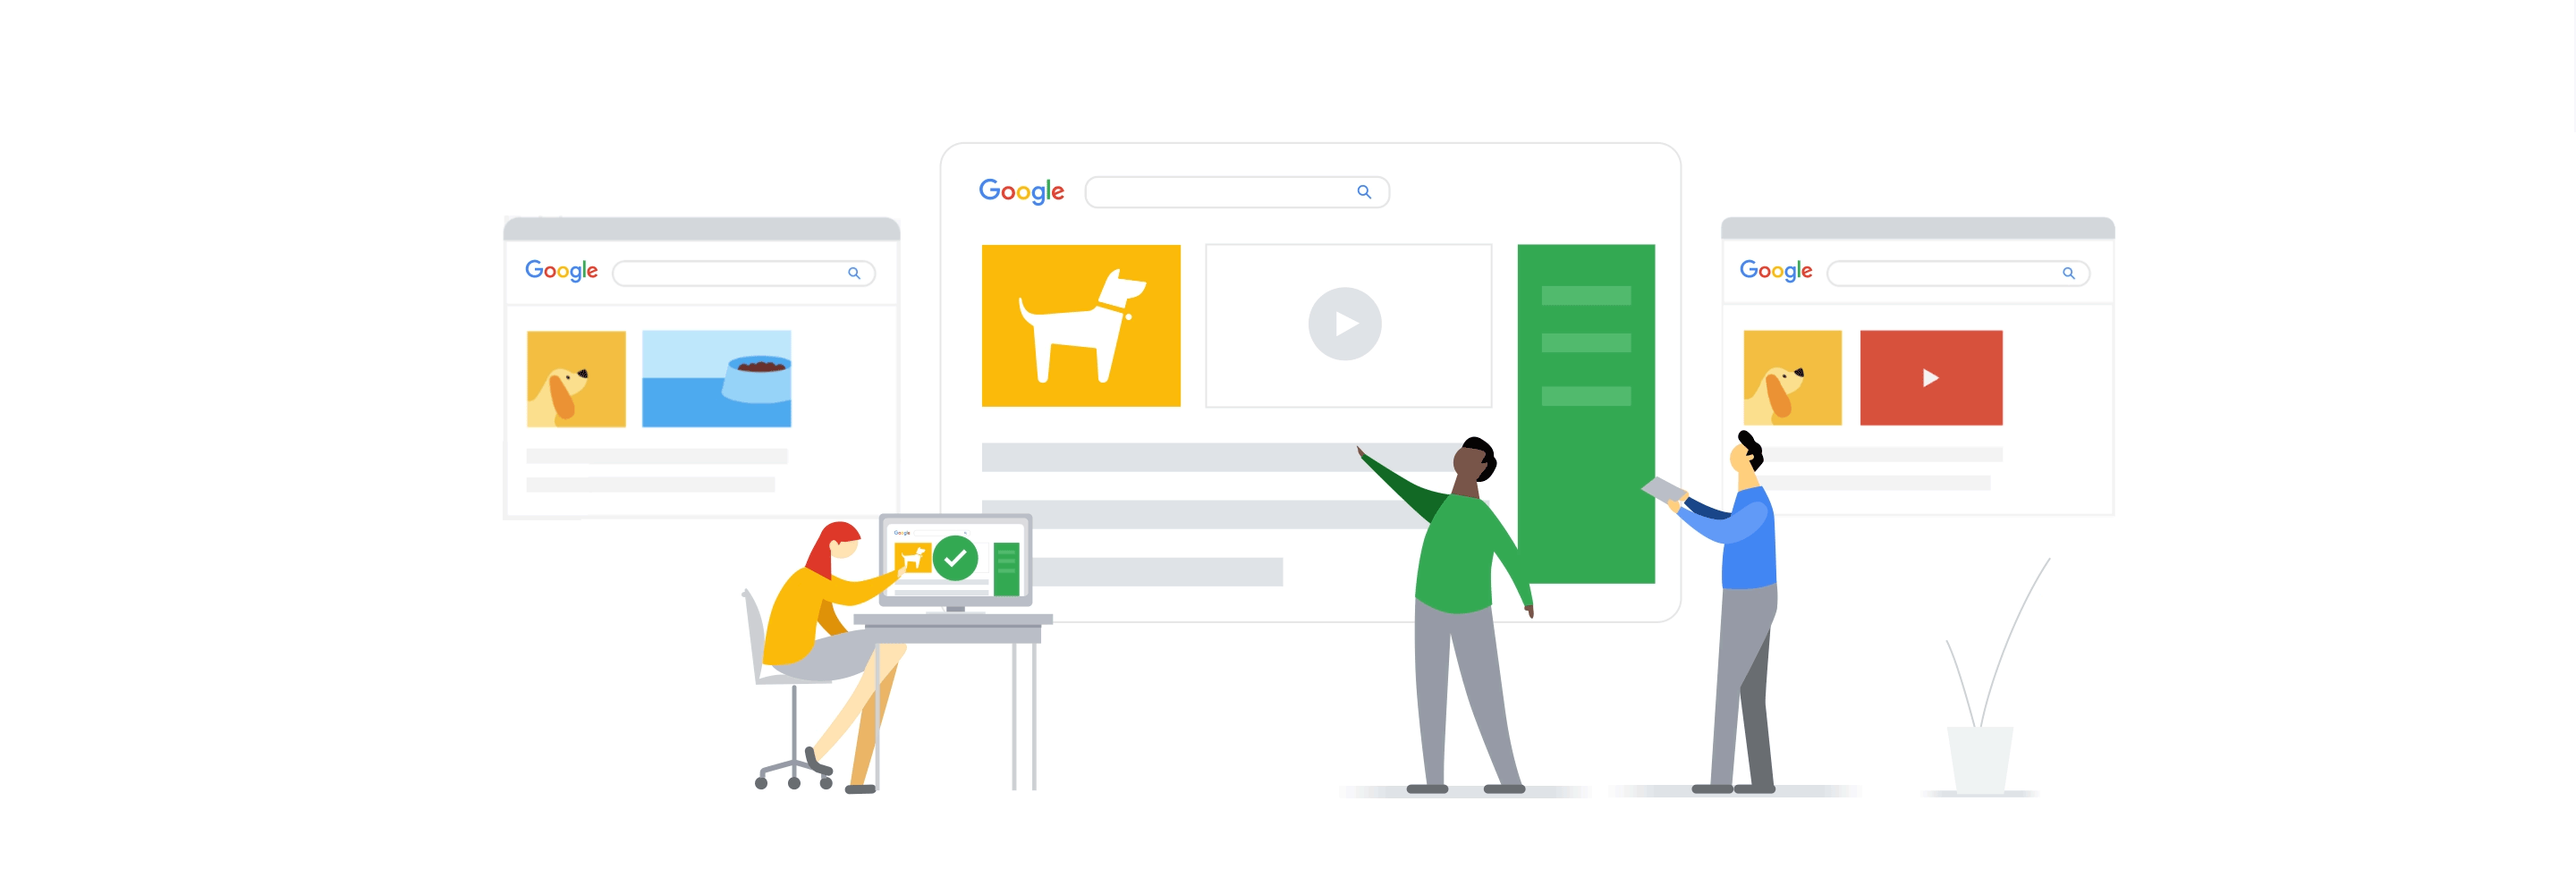 Google Search - Discover How Google Search Works